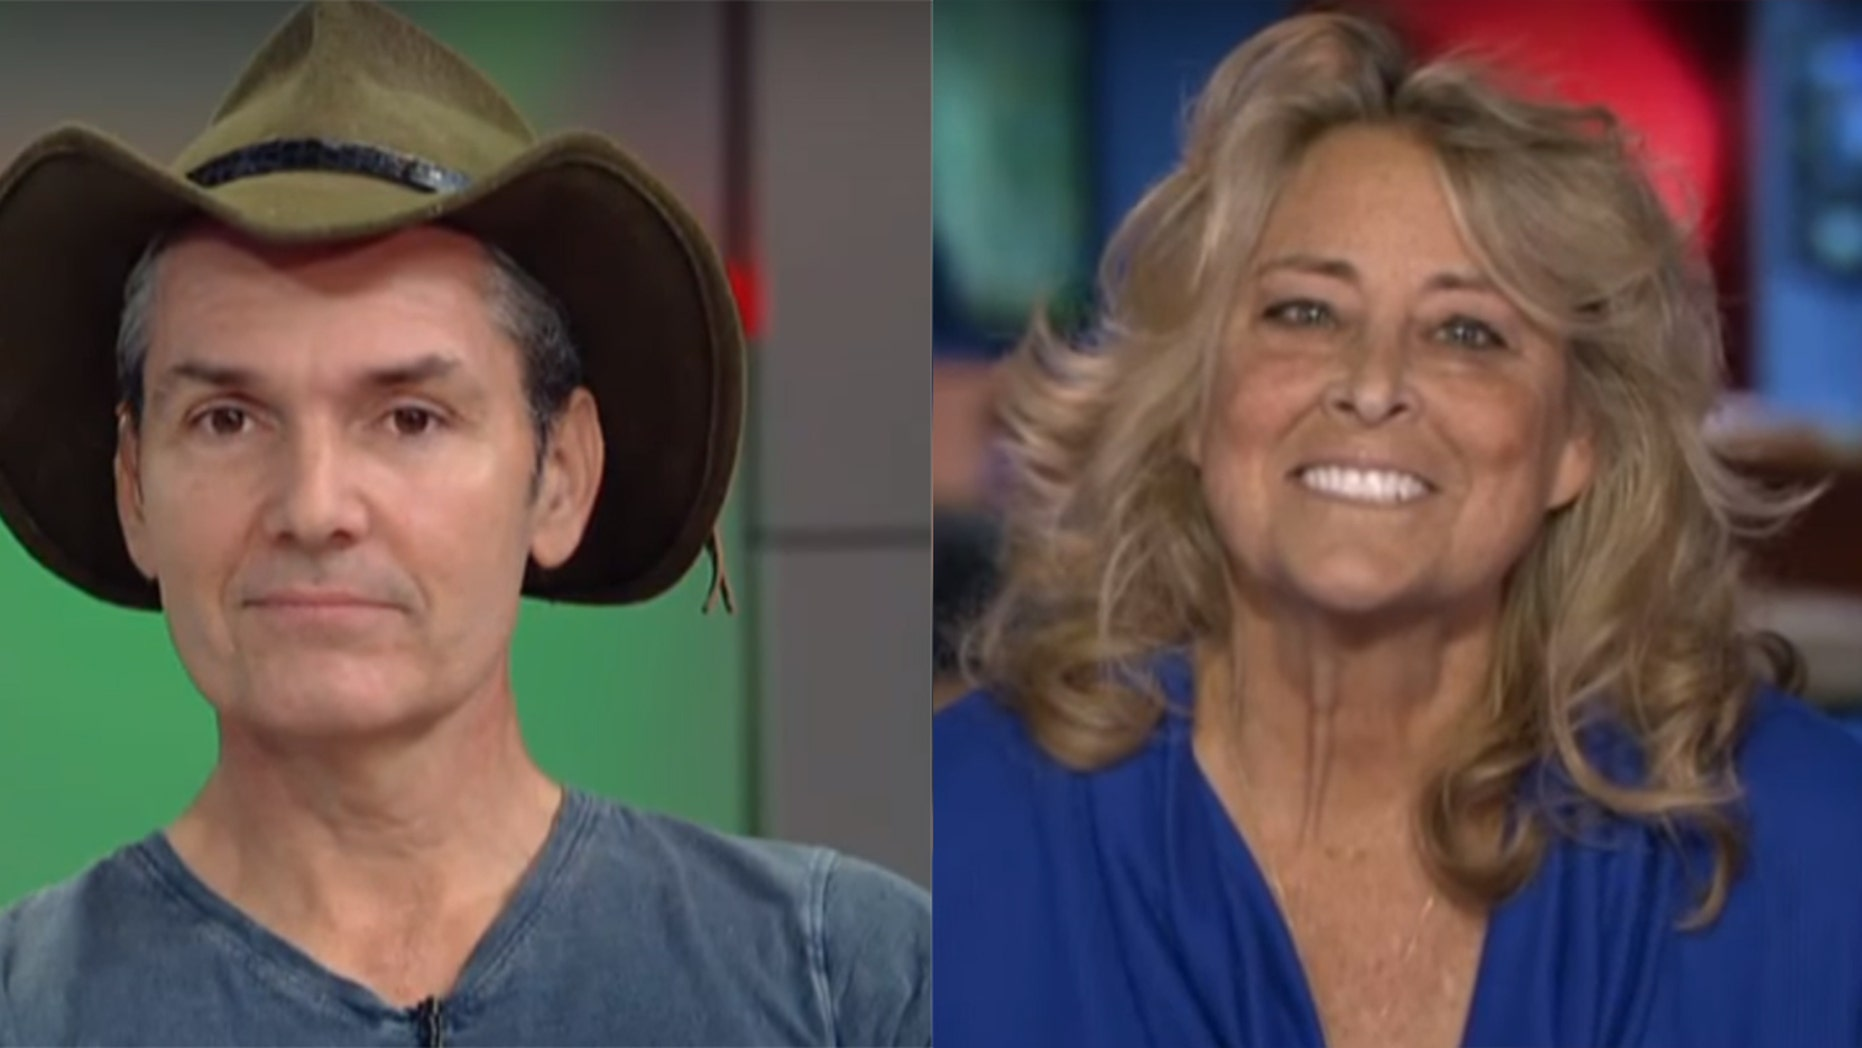 Kevin Shea, left, and Lois Knudson, right, appeared on Fox and Friends in December, but did not meet in-person until Thursday.